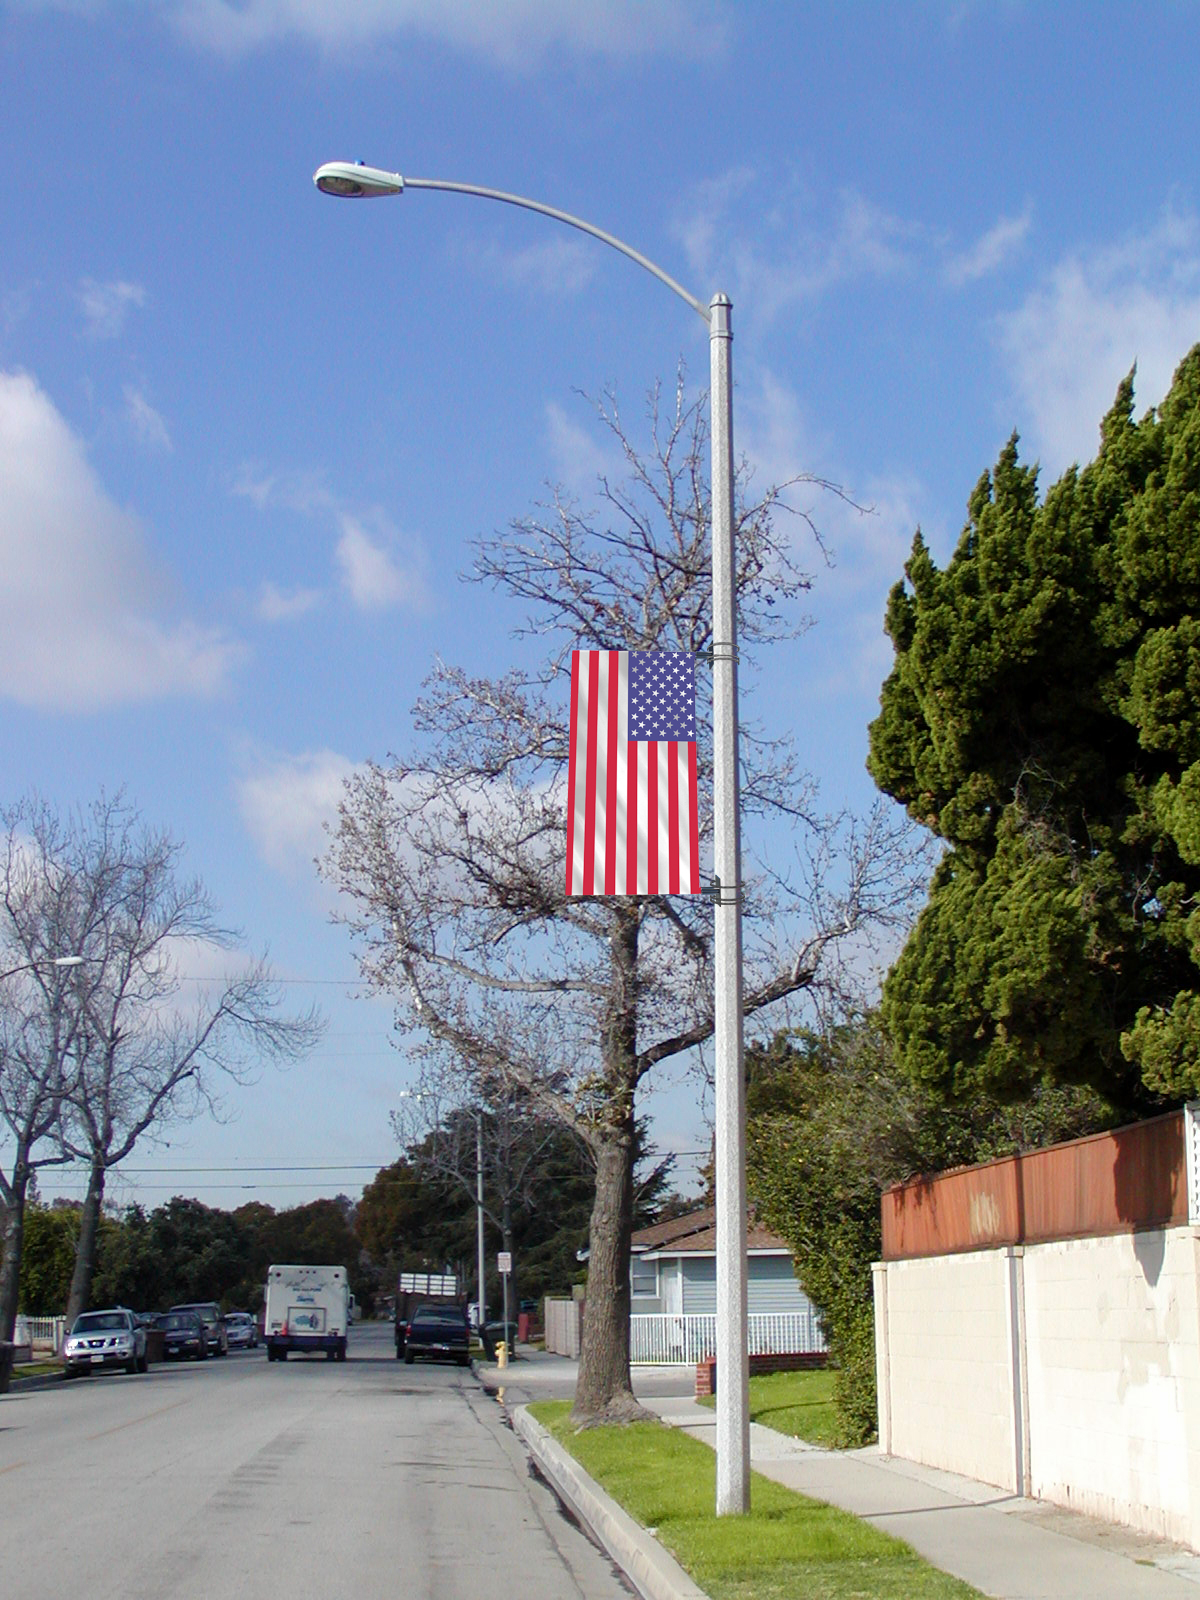 Street-Pole-Banner-with-USA-Flag-Sunny-Day